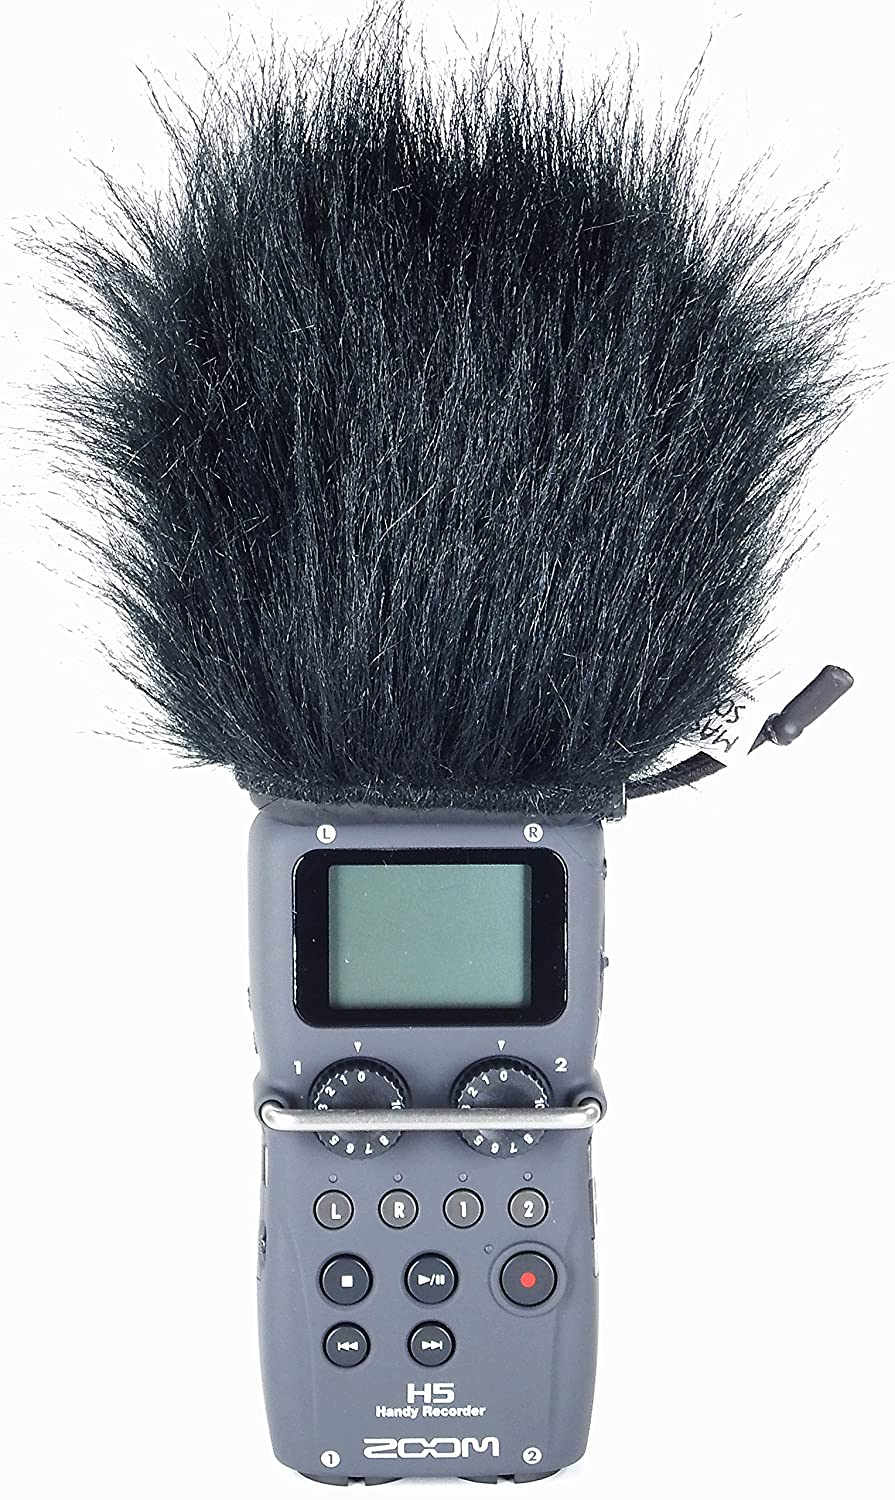 Master Sonido Outdoor Winds creen Muff for Recorders Zoom H5/and Zoom H6 Record in a High Quality. to Protect The Record from the Wind Made in the EU from Certified Easy to Put on Grabador de mano de alta quality and Reliable Materials